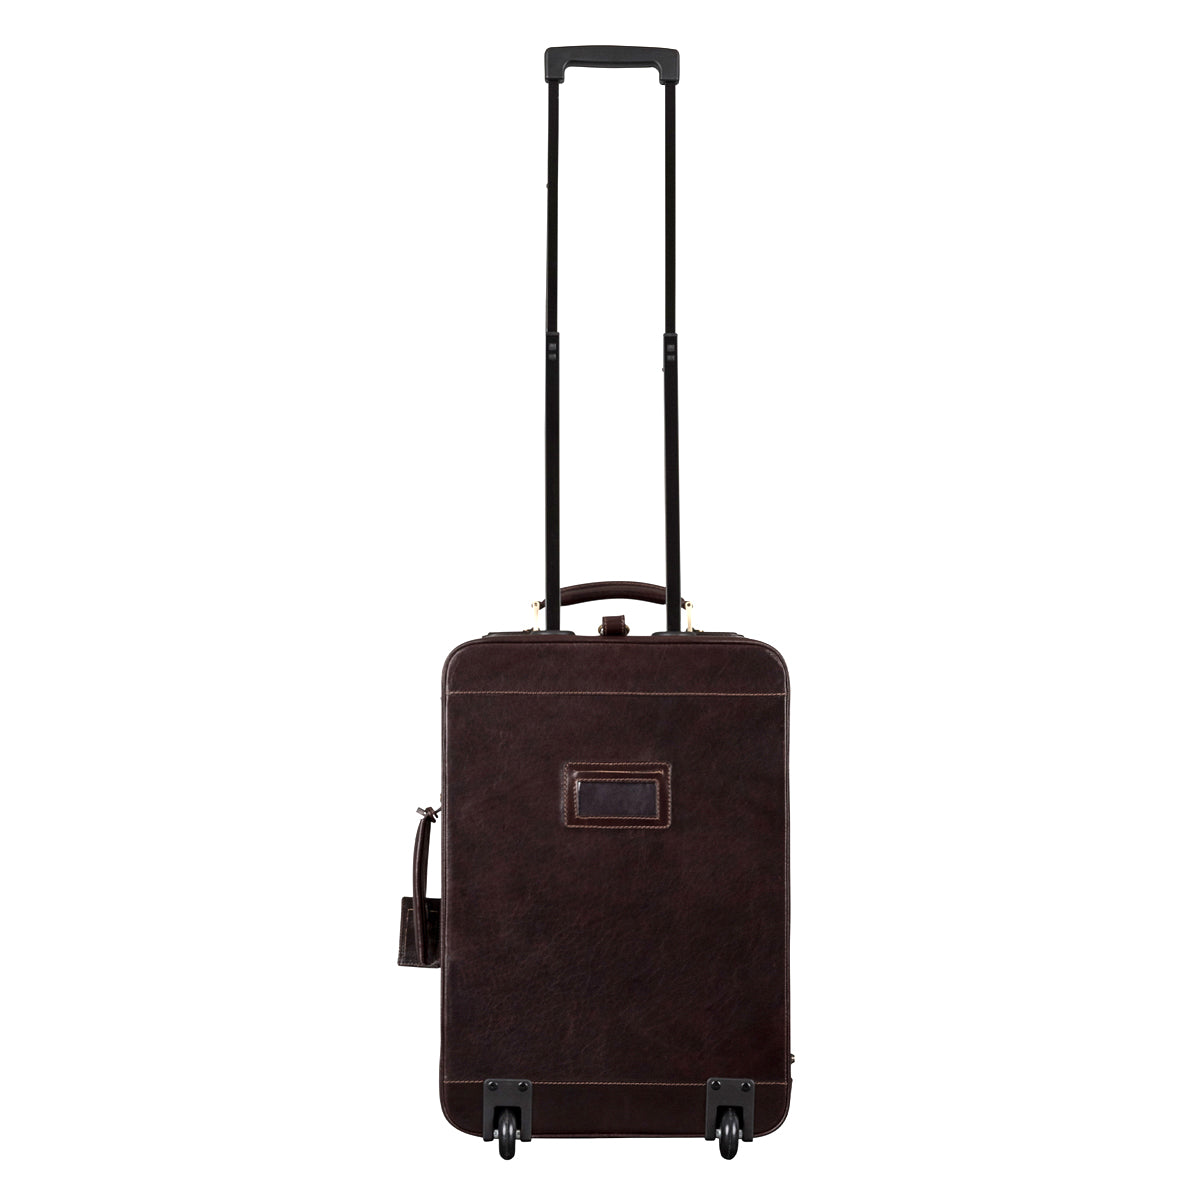 Image 4 of the 'Piazzale' Dark Chocolate Veg-Tanned Leather Wheeled Suitcase